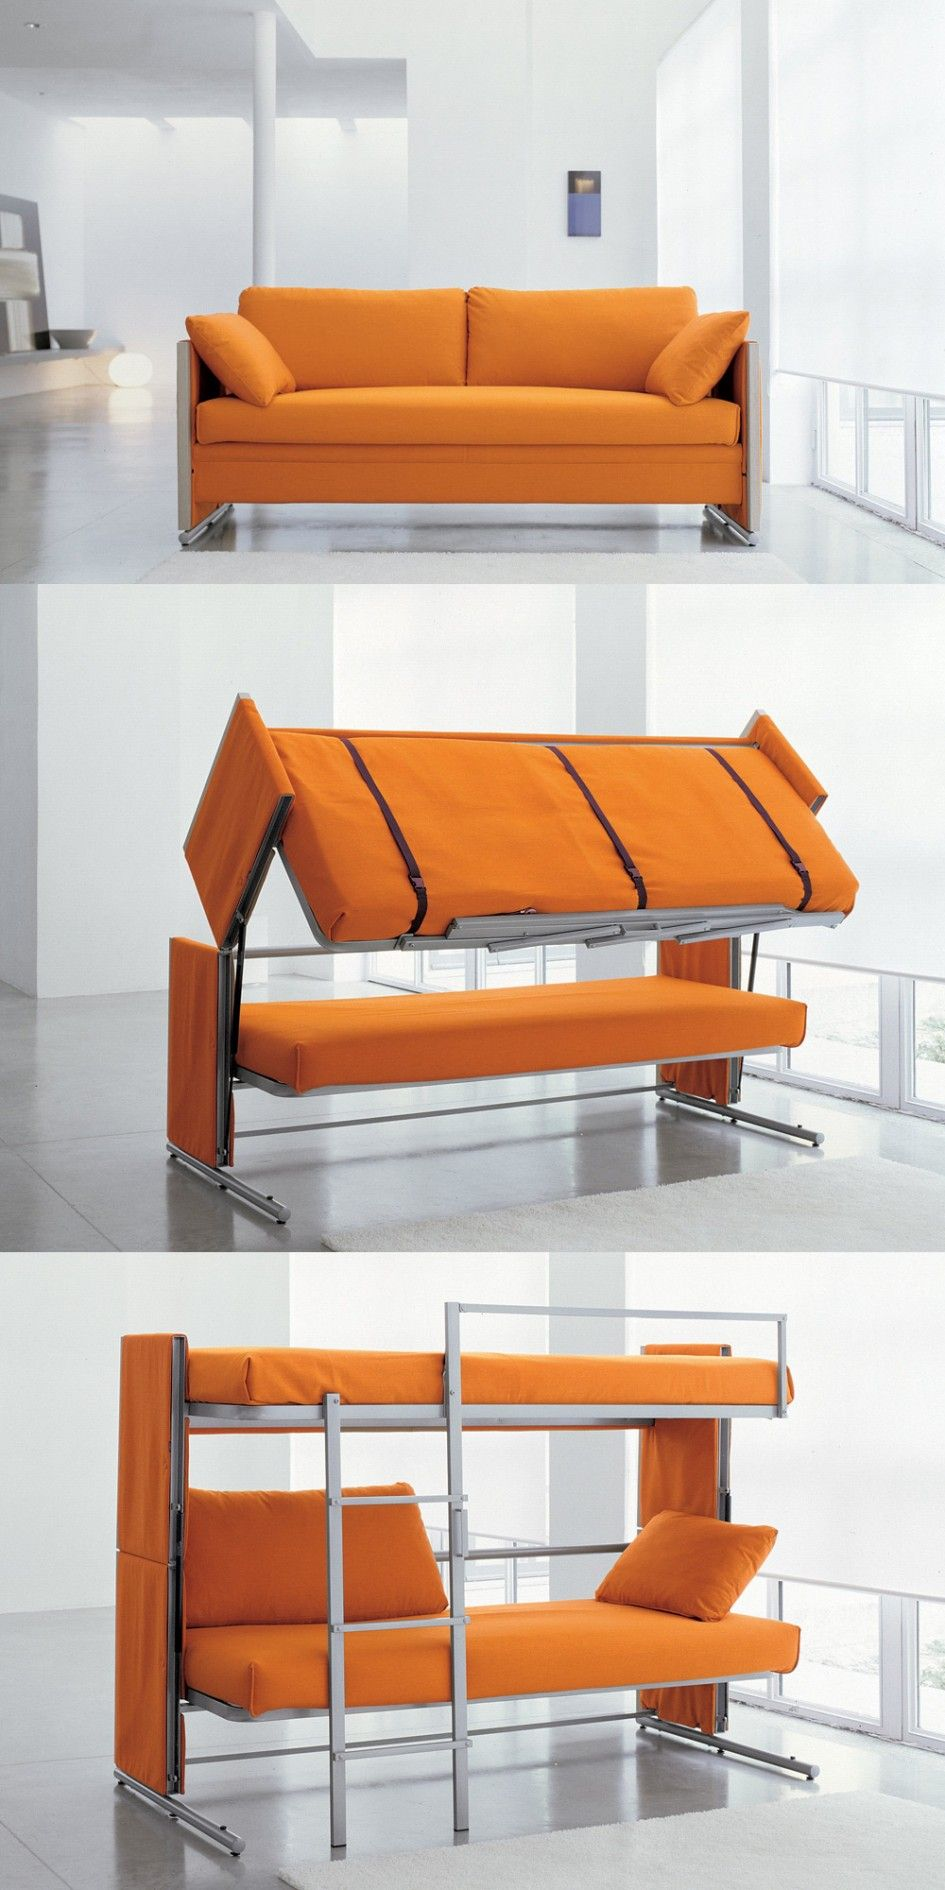 Inspiring Wall Bed Couch With Space Saving Concept For Beautiful